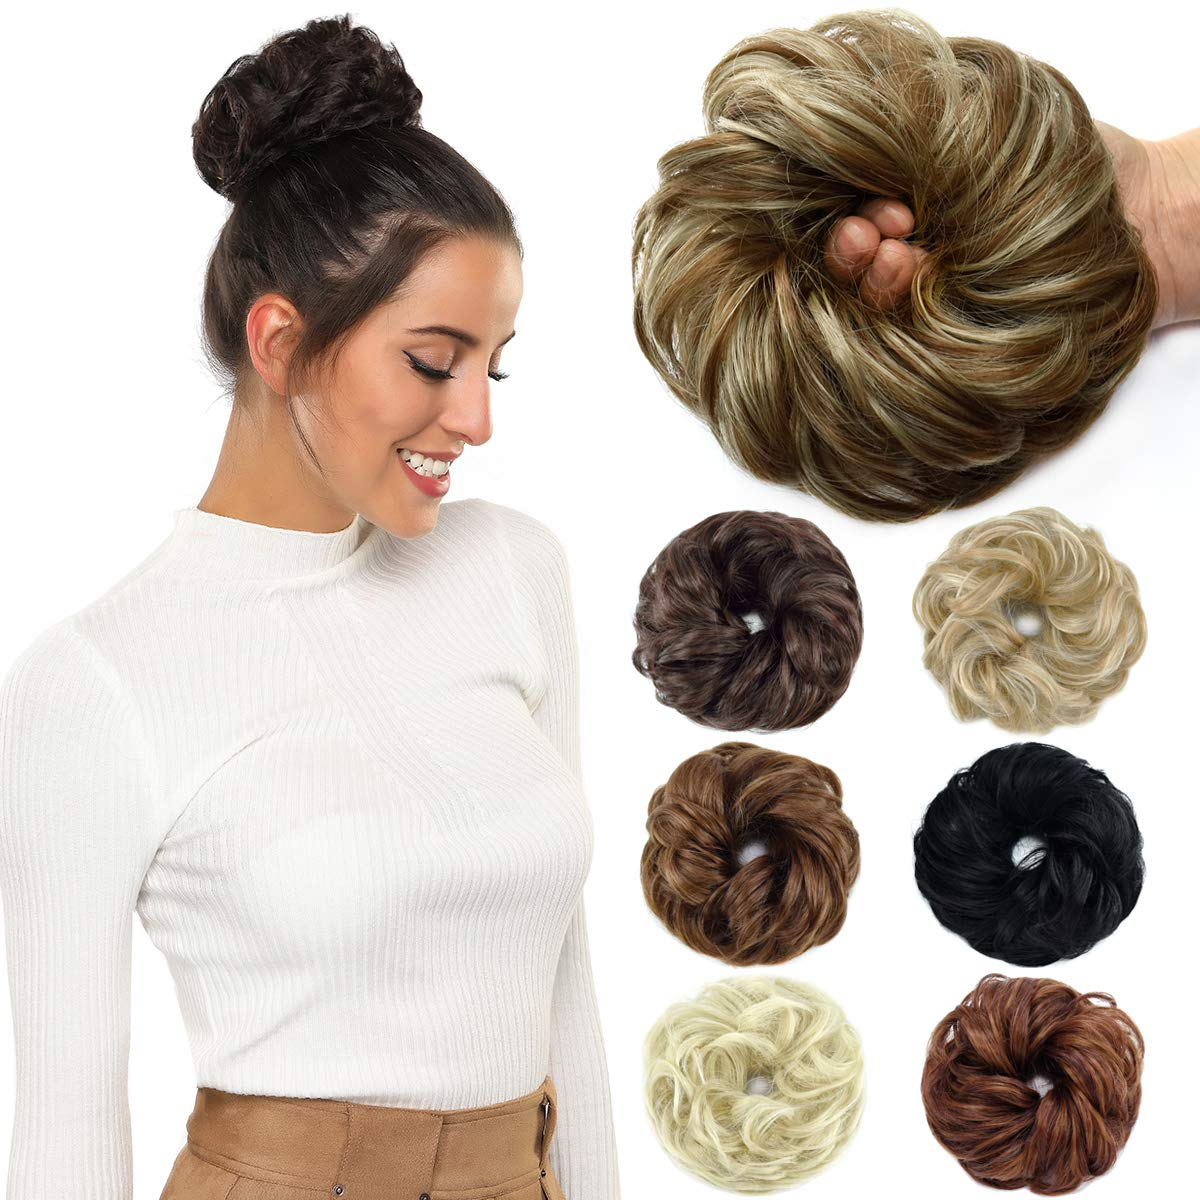 ROSEBUD Hair Bun Extensions Messy Synthetic Chignon Hairpiece Easy Bun Hair Pieces for Women Hair Updos by Rose bud